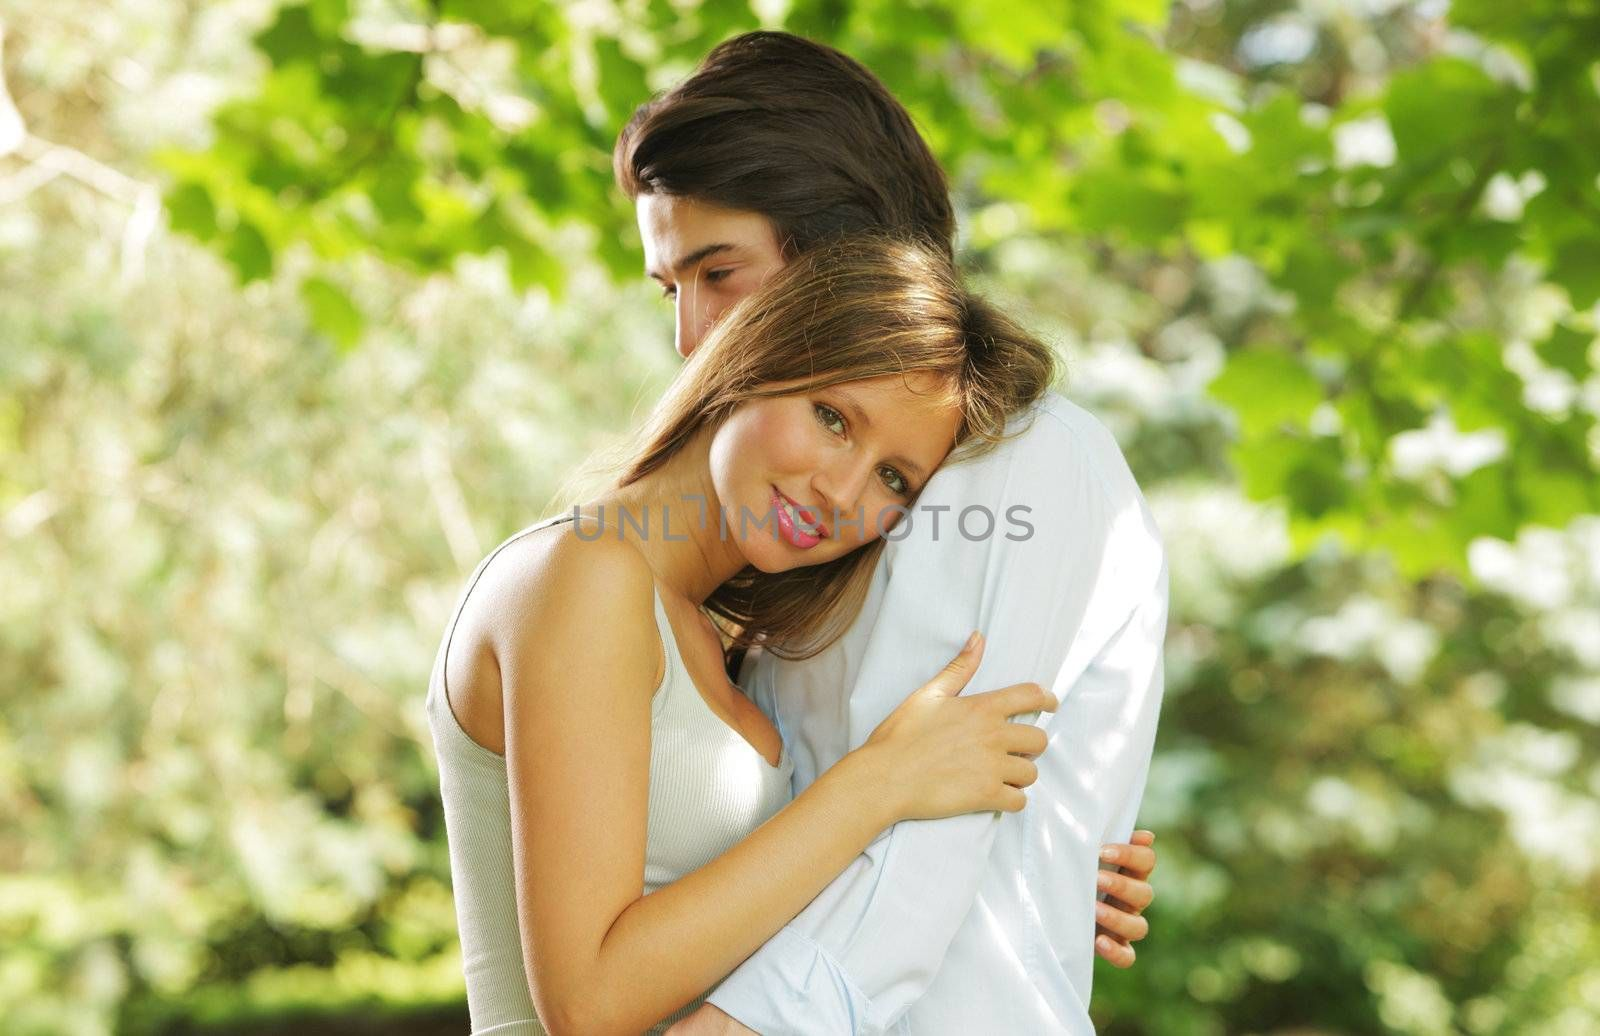 the romantic embrace of a young couple in love